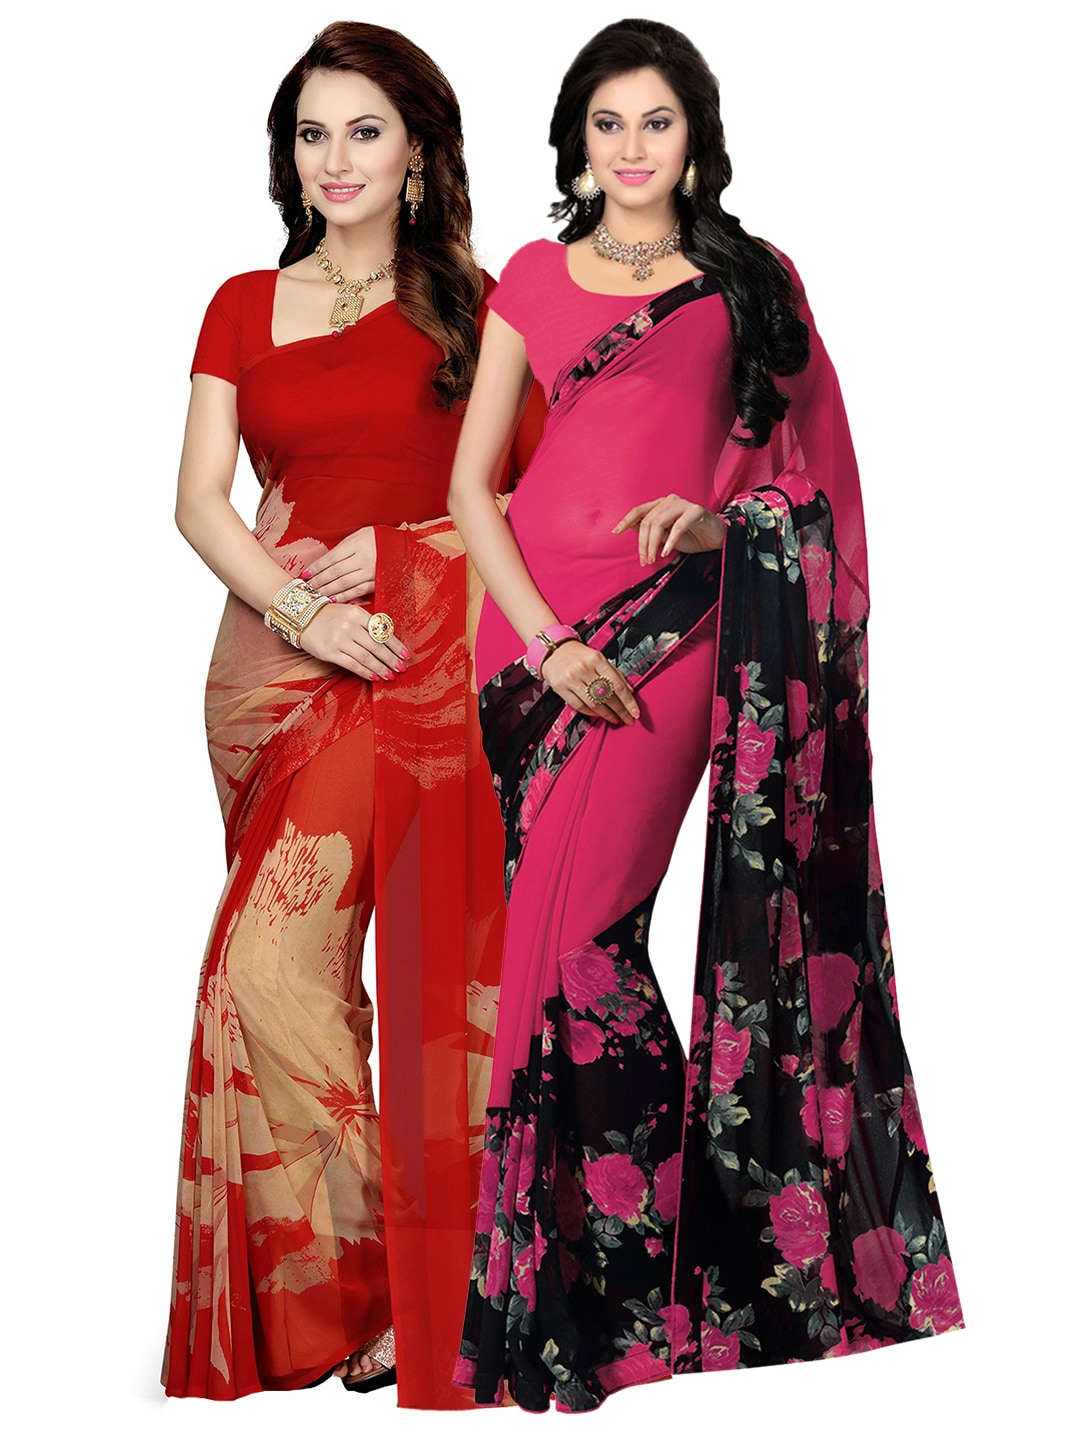 89f12ccde69 Printed Saree - Buy Printed Sarees for Women Online in India